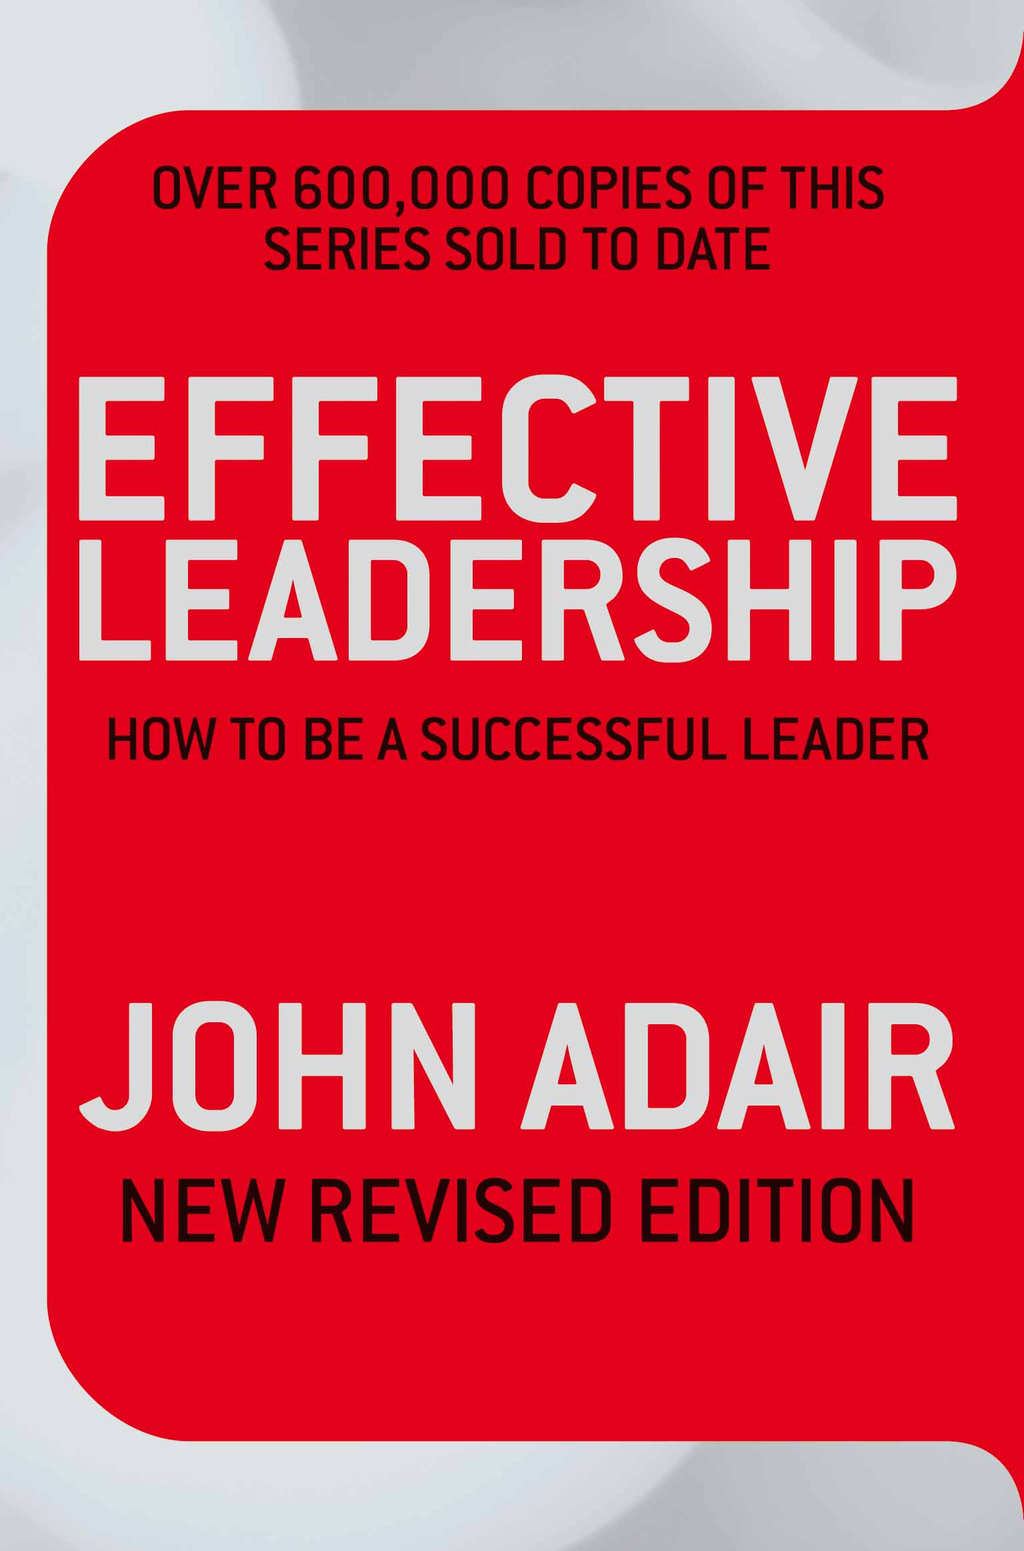 Effective Leadership (NEW REVISED EDITION) How to Be a Successful Leader